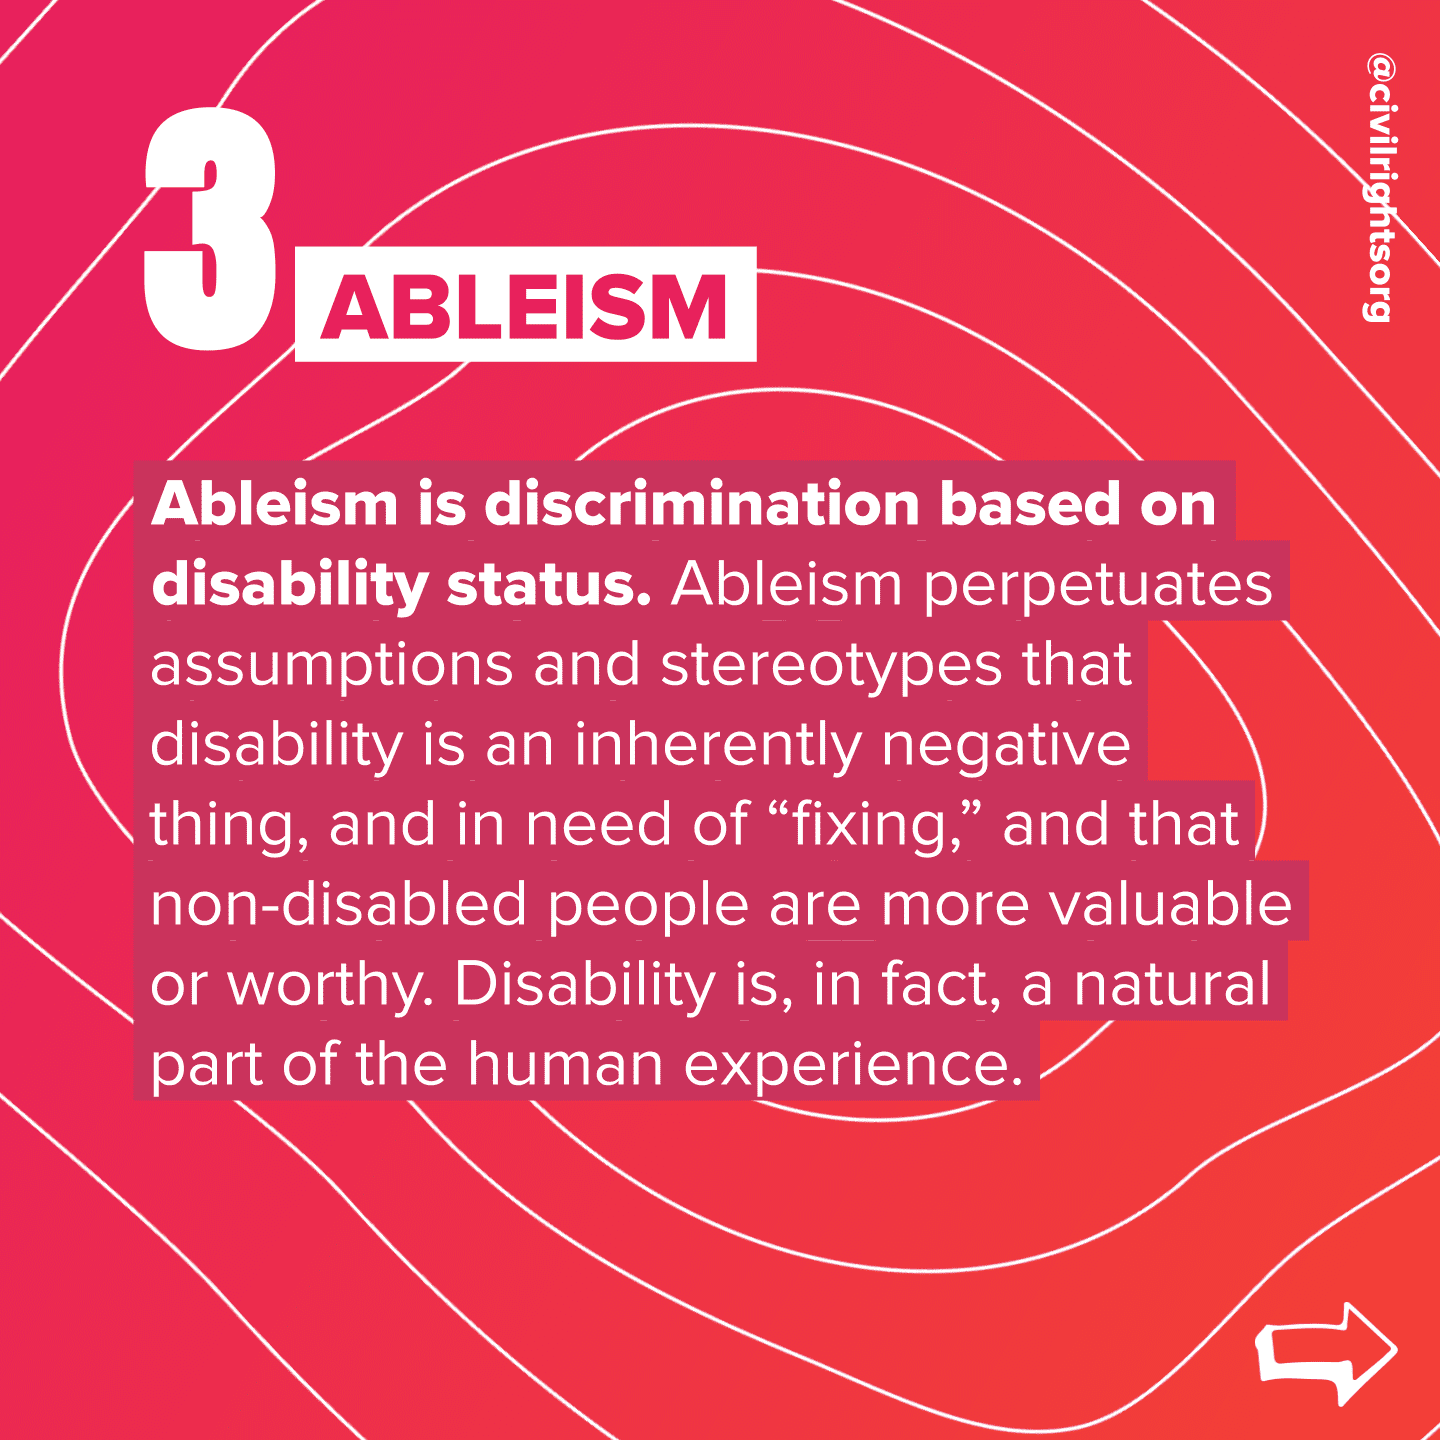 """Number 3. Title """"Ableism,"""" Ableism is discrimination based on disability status. Ableism perpetuates assumptions and stereotypes that disability is an inherently negative thing, and in need of """"fixing,"""" and that non-disabled people are more valuable or worthy. Disability is, in fact, a natural part of the human experience. Swipe right arrow."""